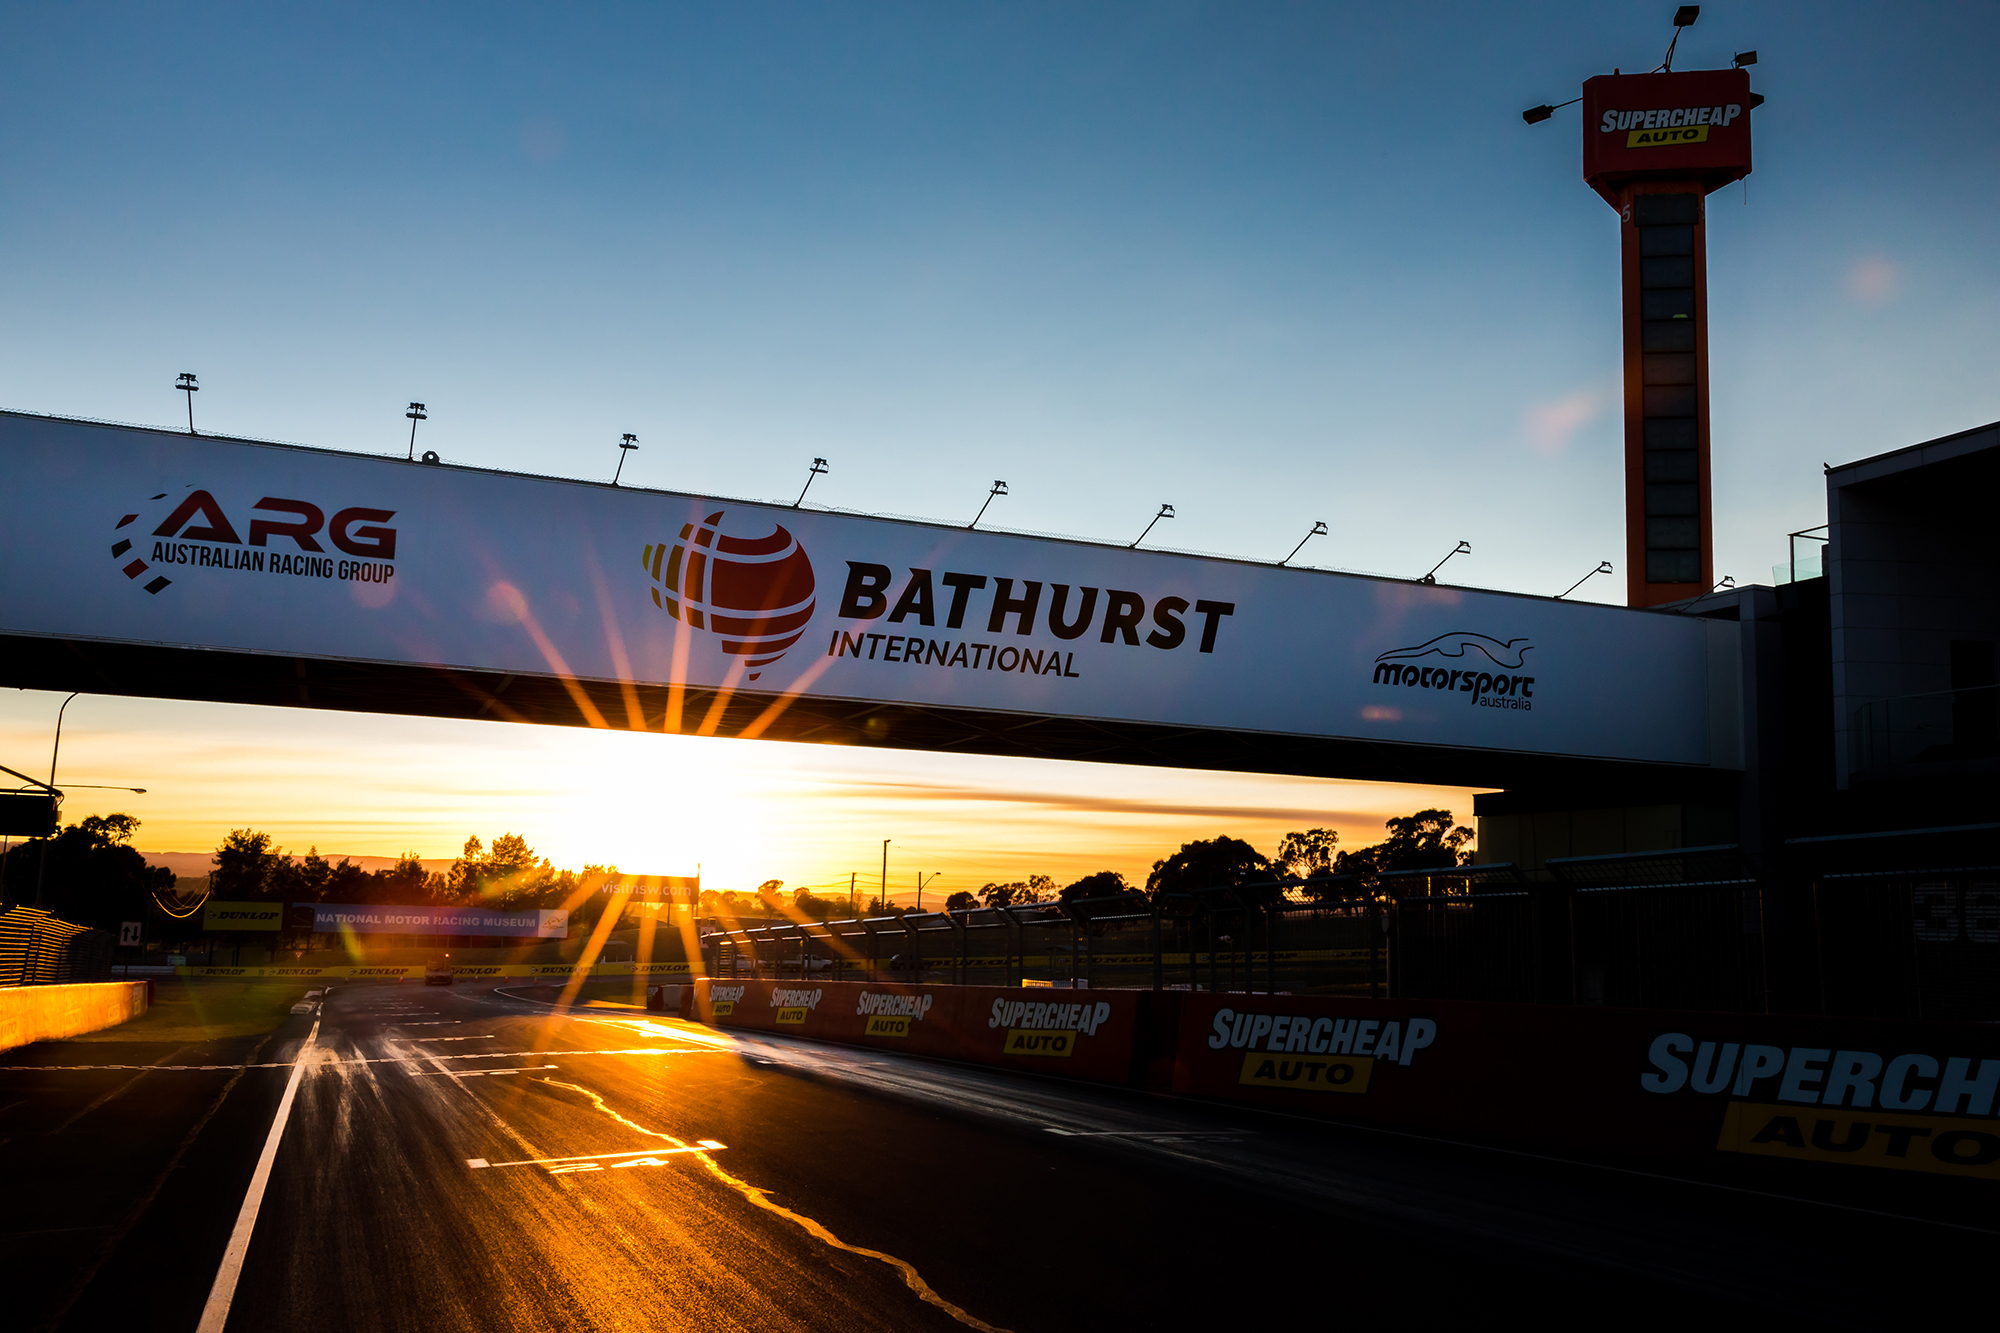 Date confirmed for Bathurst International